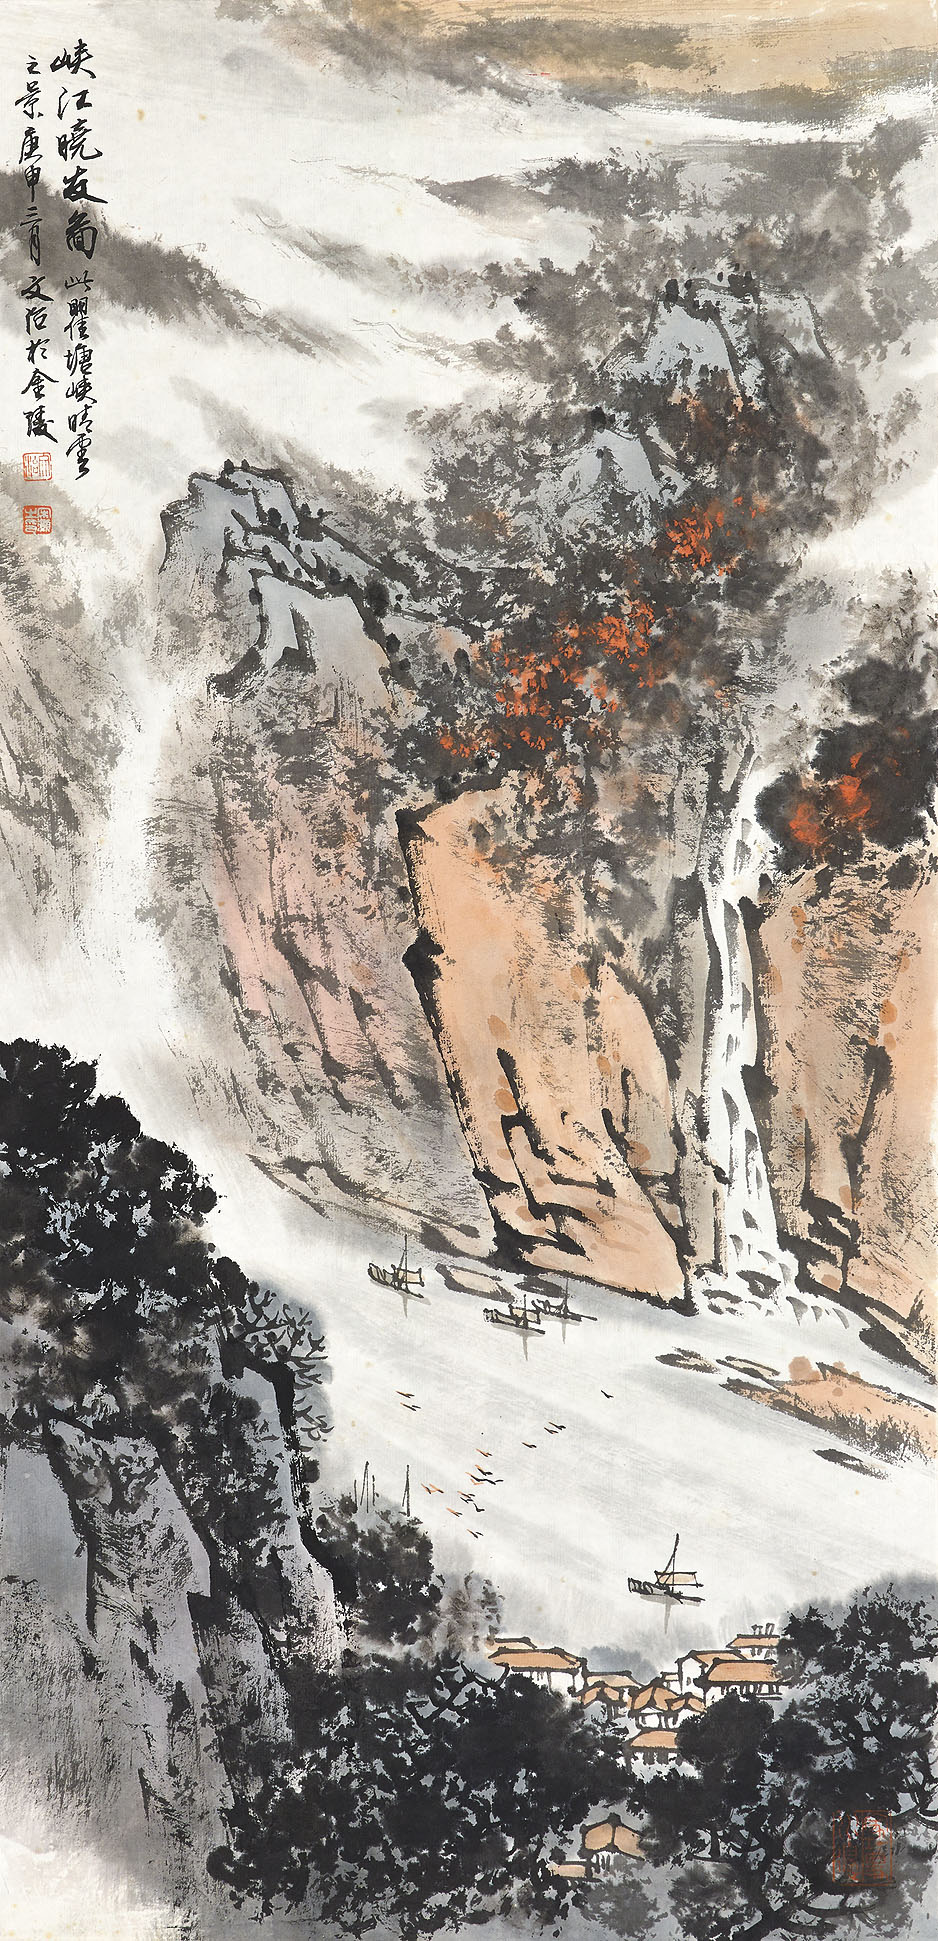 SONG WENZHI (1919-2000)